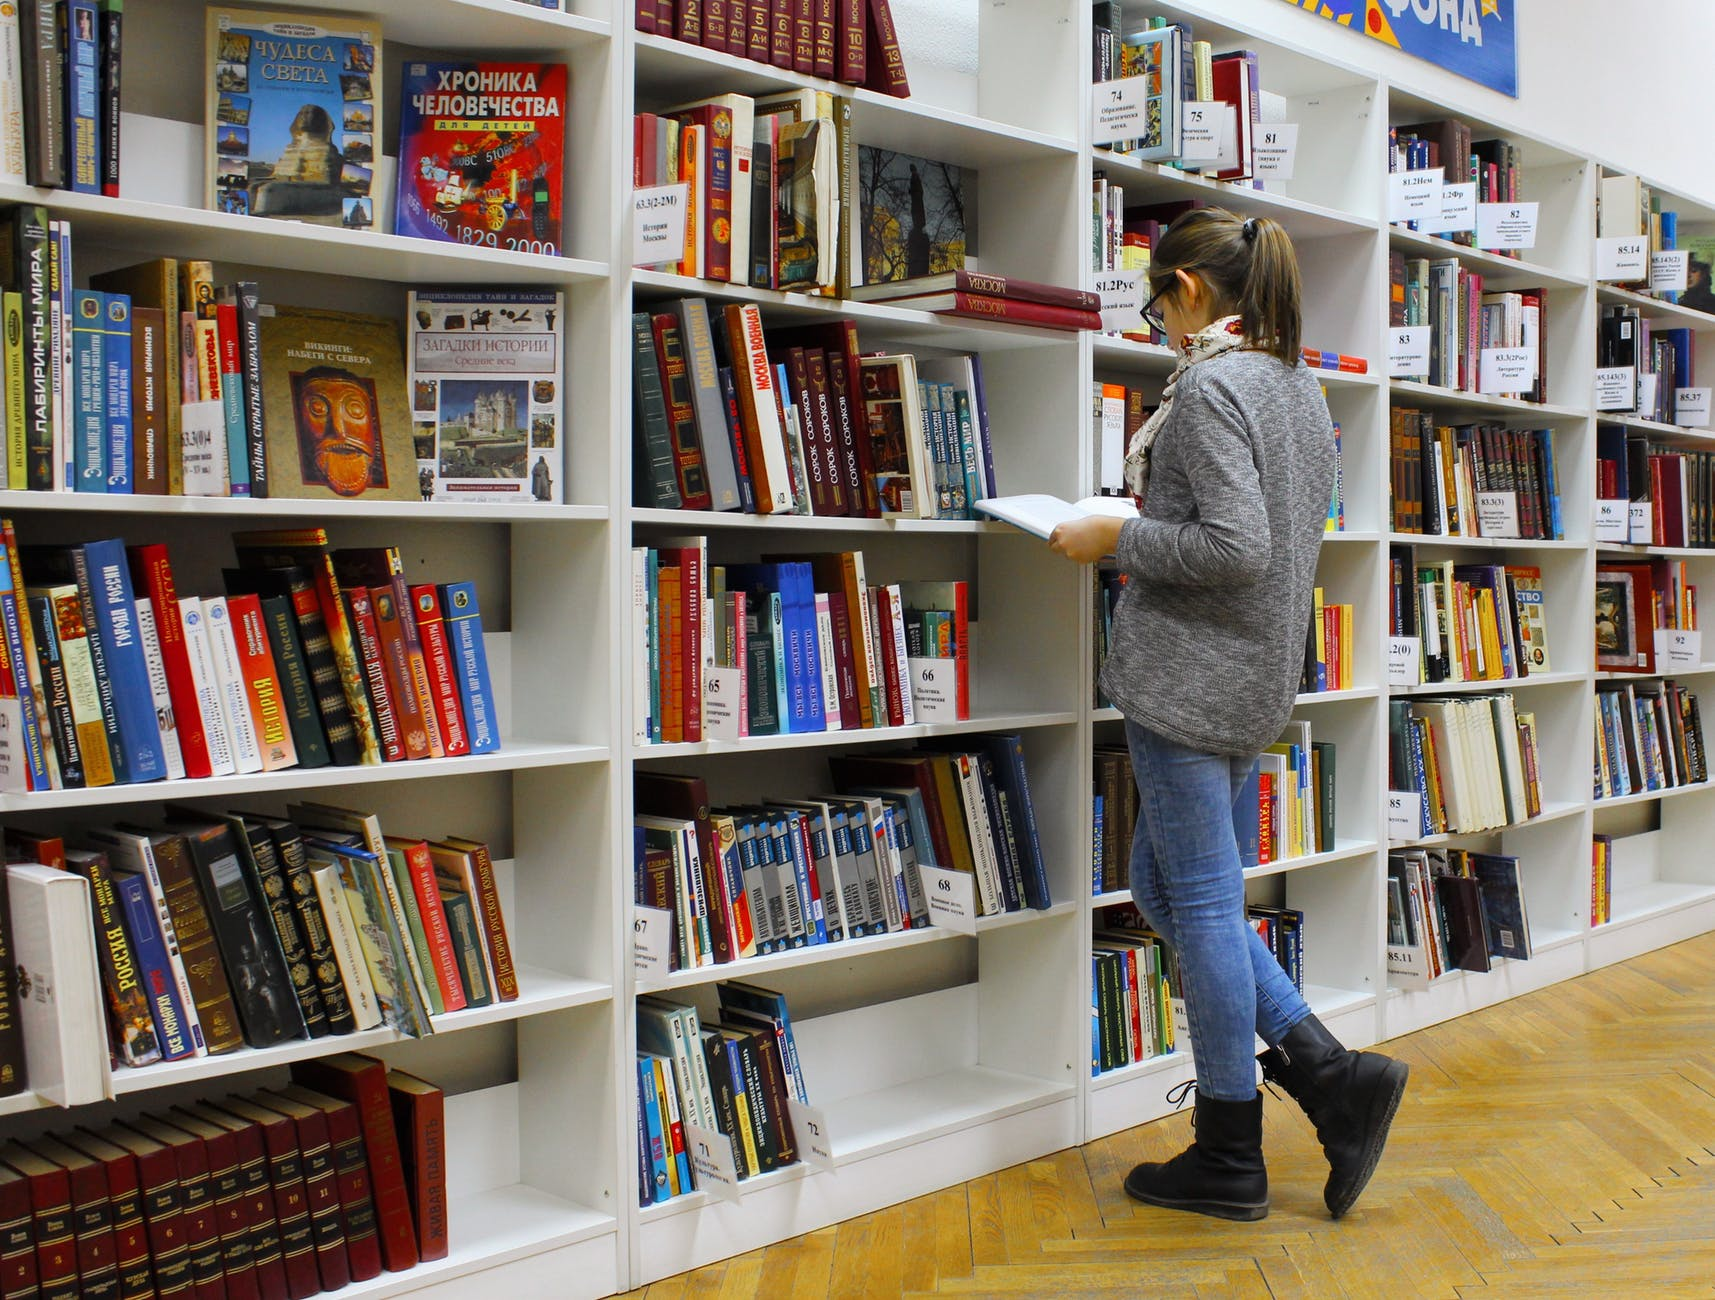 The joy of browsing for a book